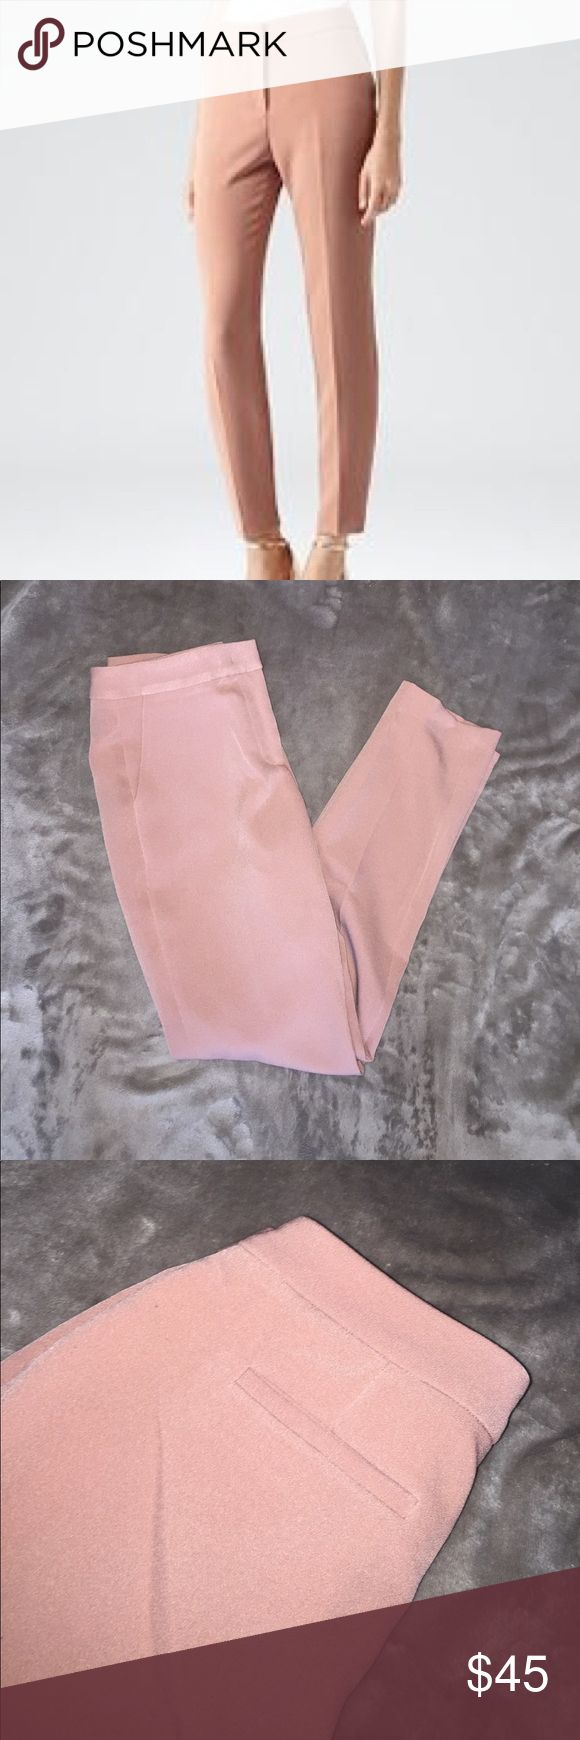 REISS Paris Lan Trousers Gorgeous, high waisted, tailored, ankle length REISS trousers. Gently worn in good condition! Beautiful salmon color with front pockets and sown together back pockets. Button zipper and metallic clasp closure. Reiss Pants Trousers